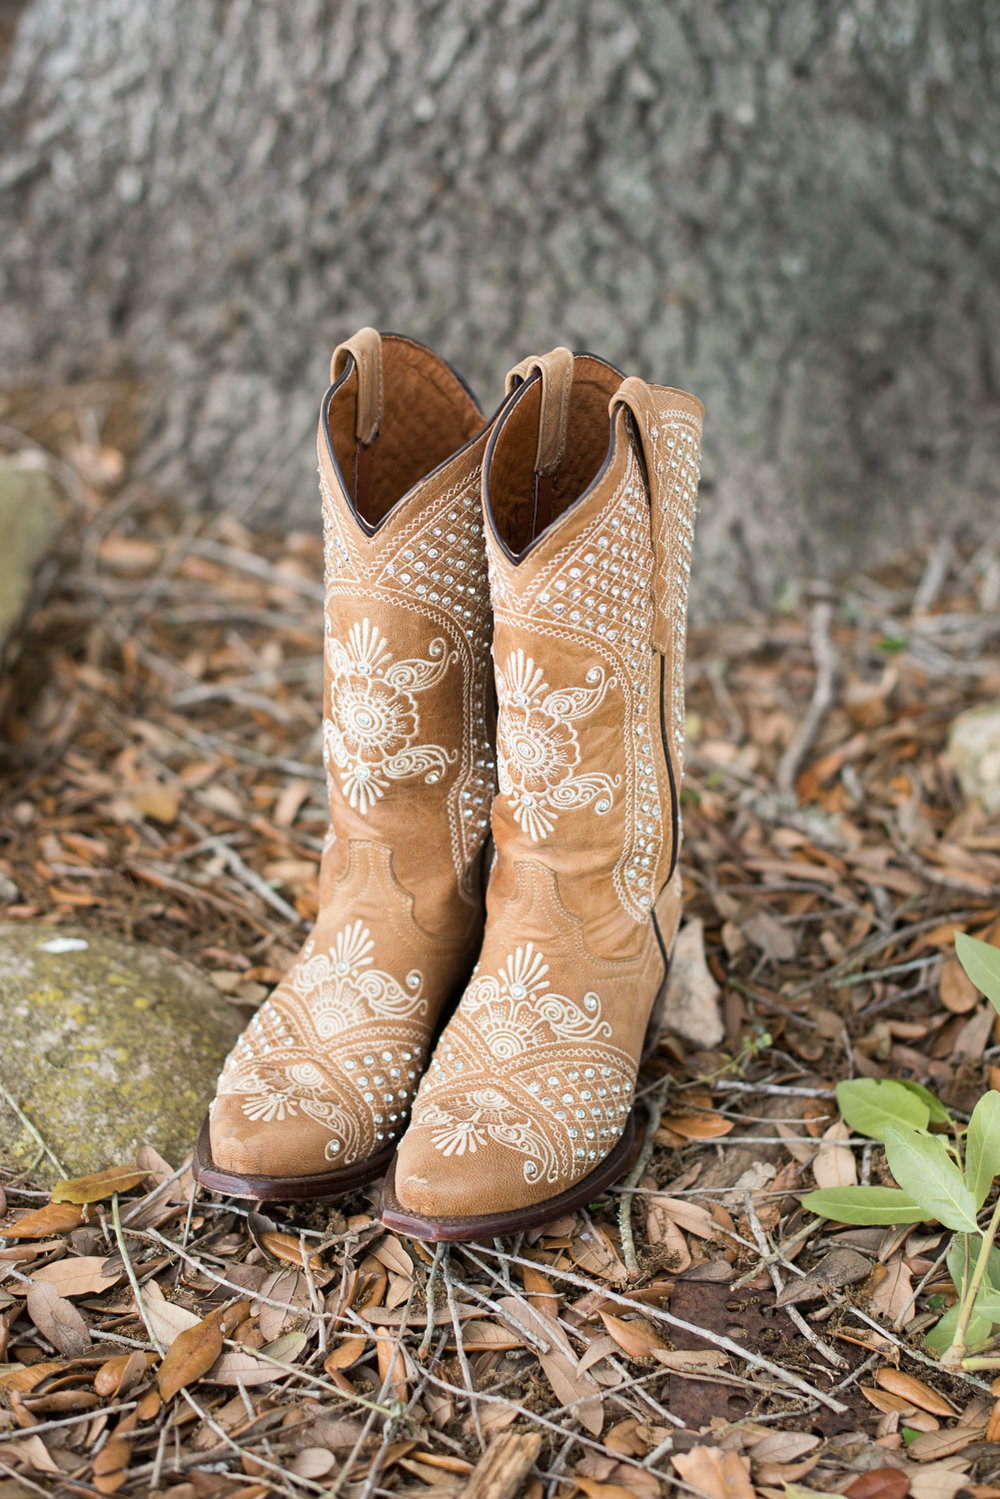 11 Gemstone studded boots for a texas wedding.jpg